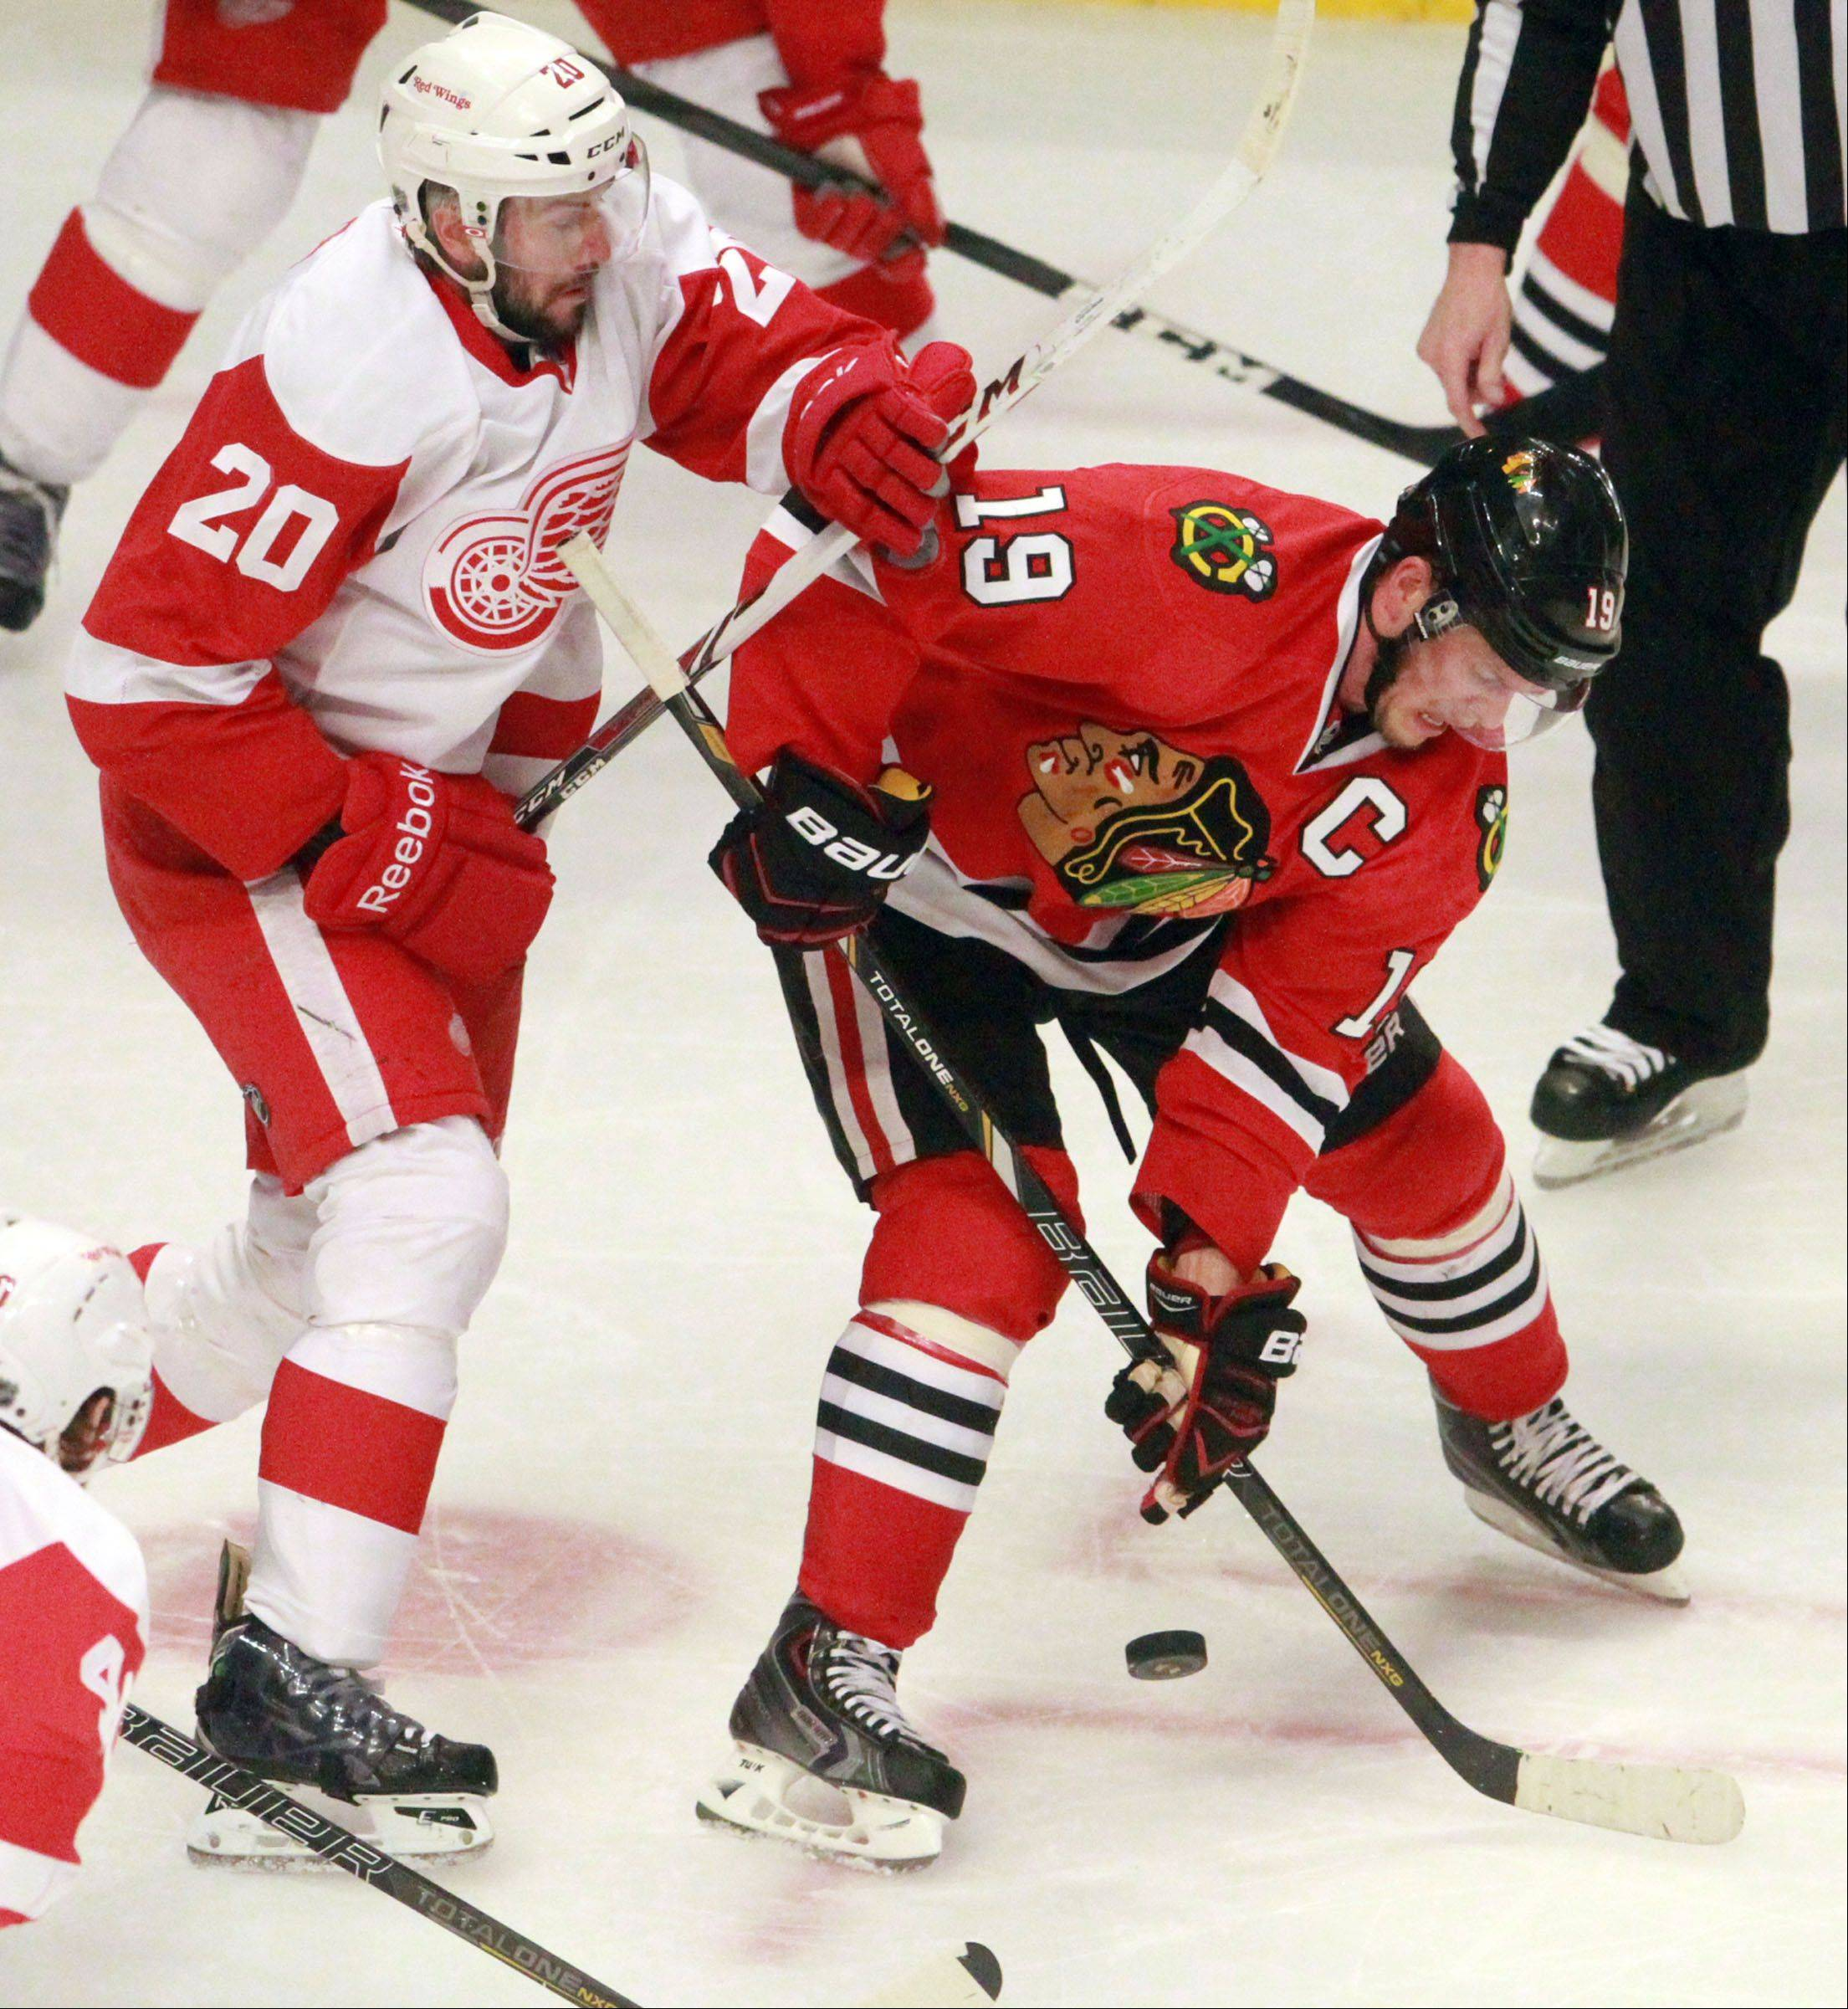 Blackhawks center Jonathan Toews looks to pass against the Red Wings' Drew Miller during the second period in Game 2 of the Western Conference semifinals at the United Center on Saturday. The Red Wings won 4-1 to tie the series at 1-1.